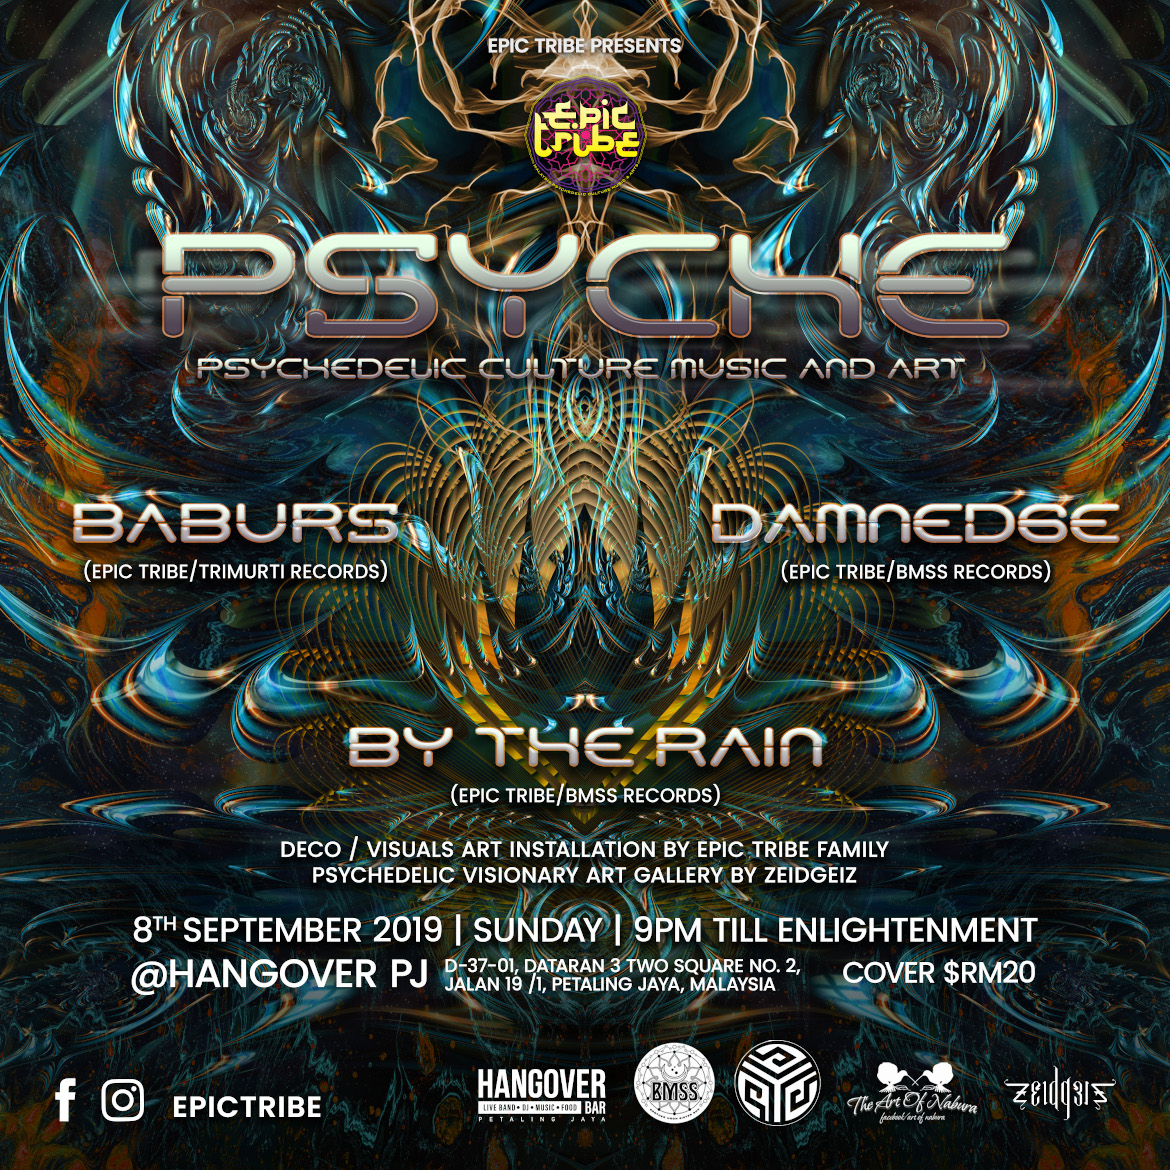 EPIC Tribe pres. Psyche @ The Hangover PJ